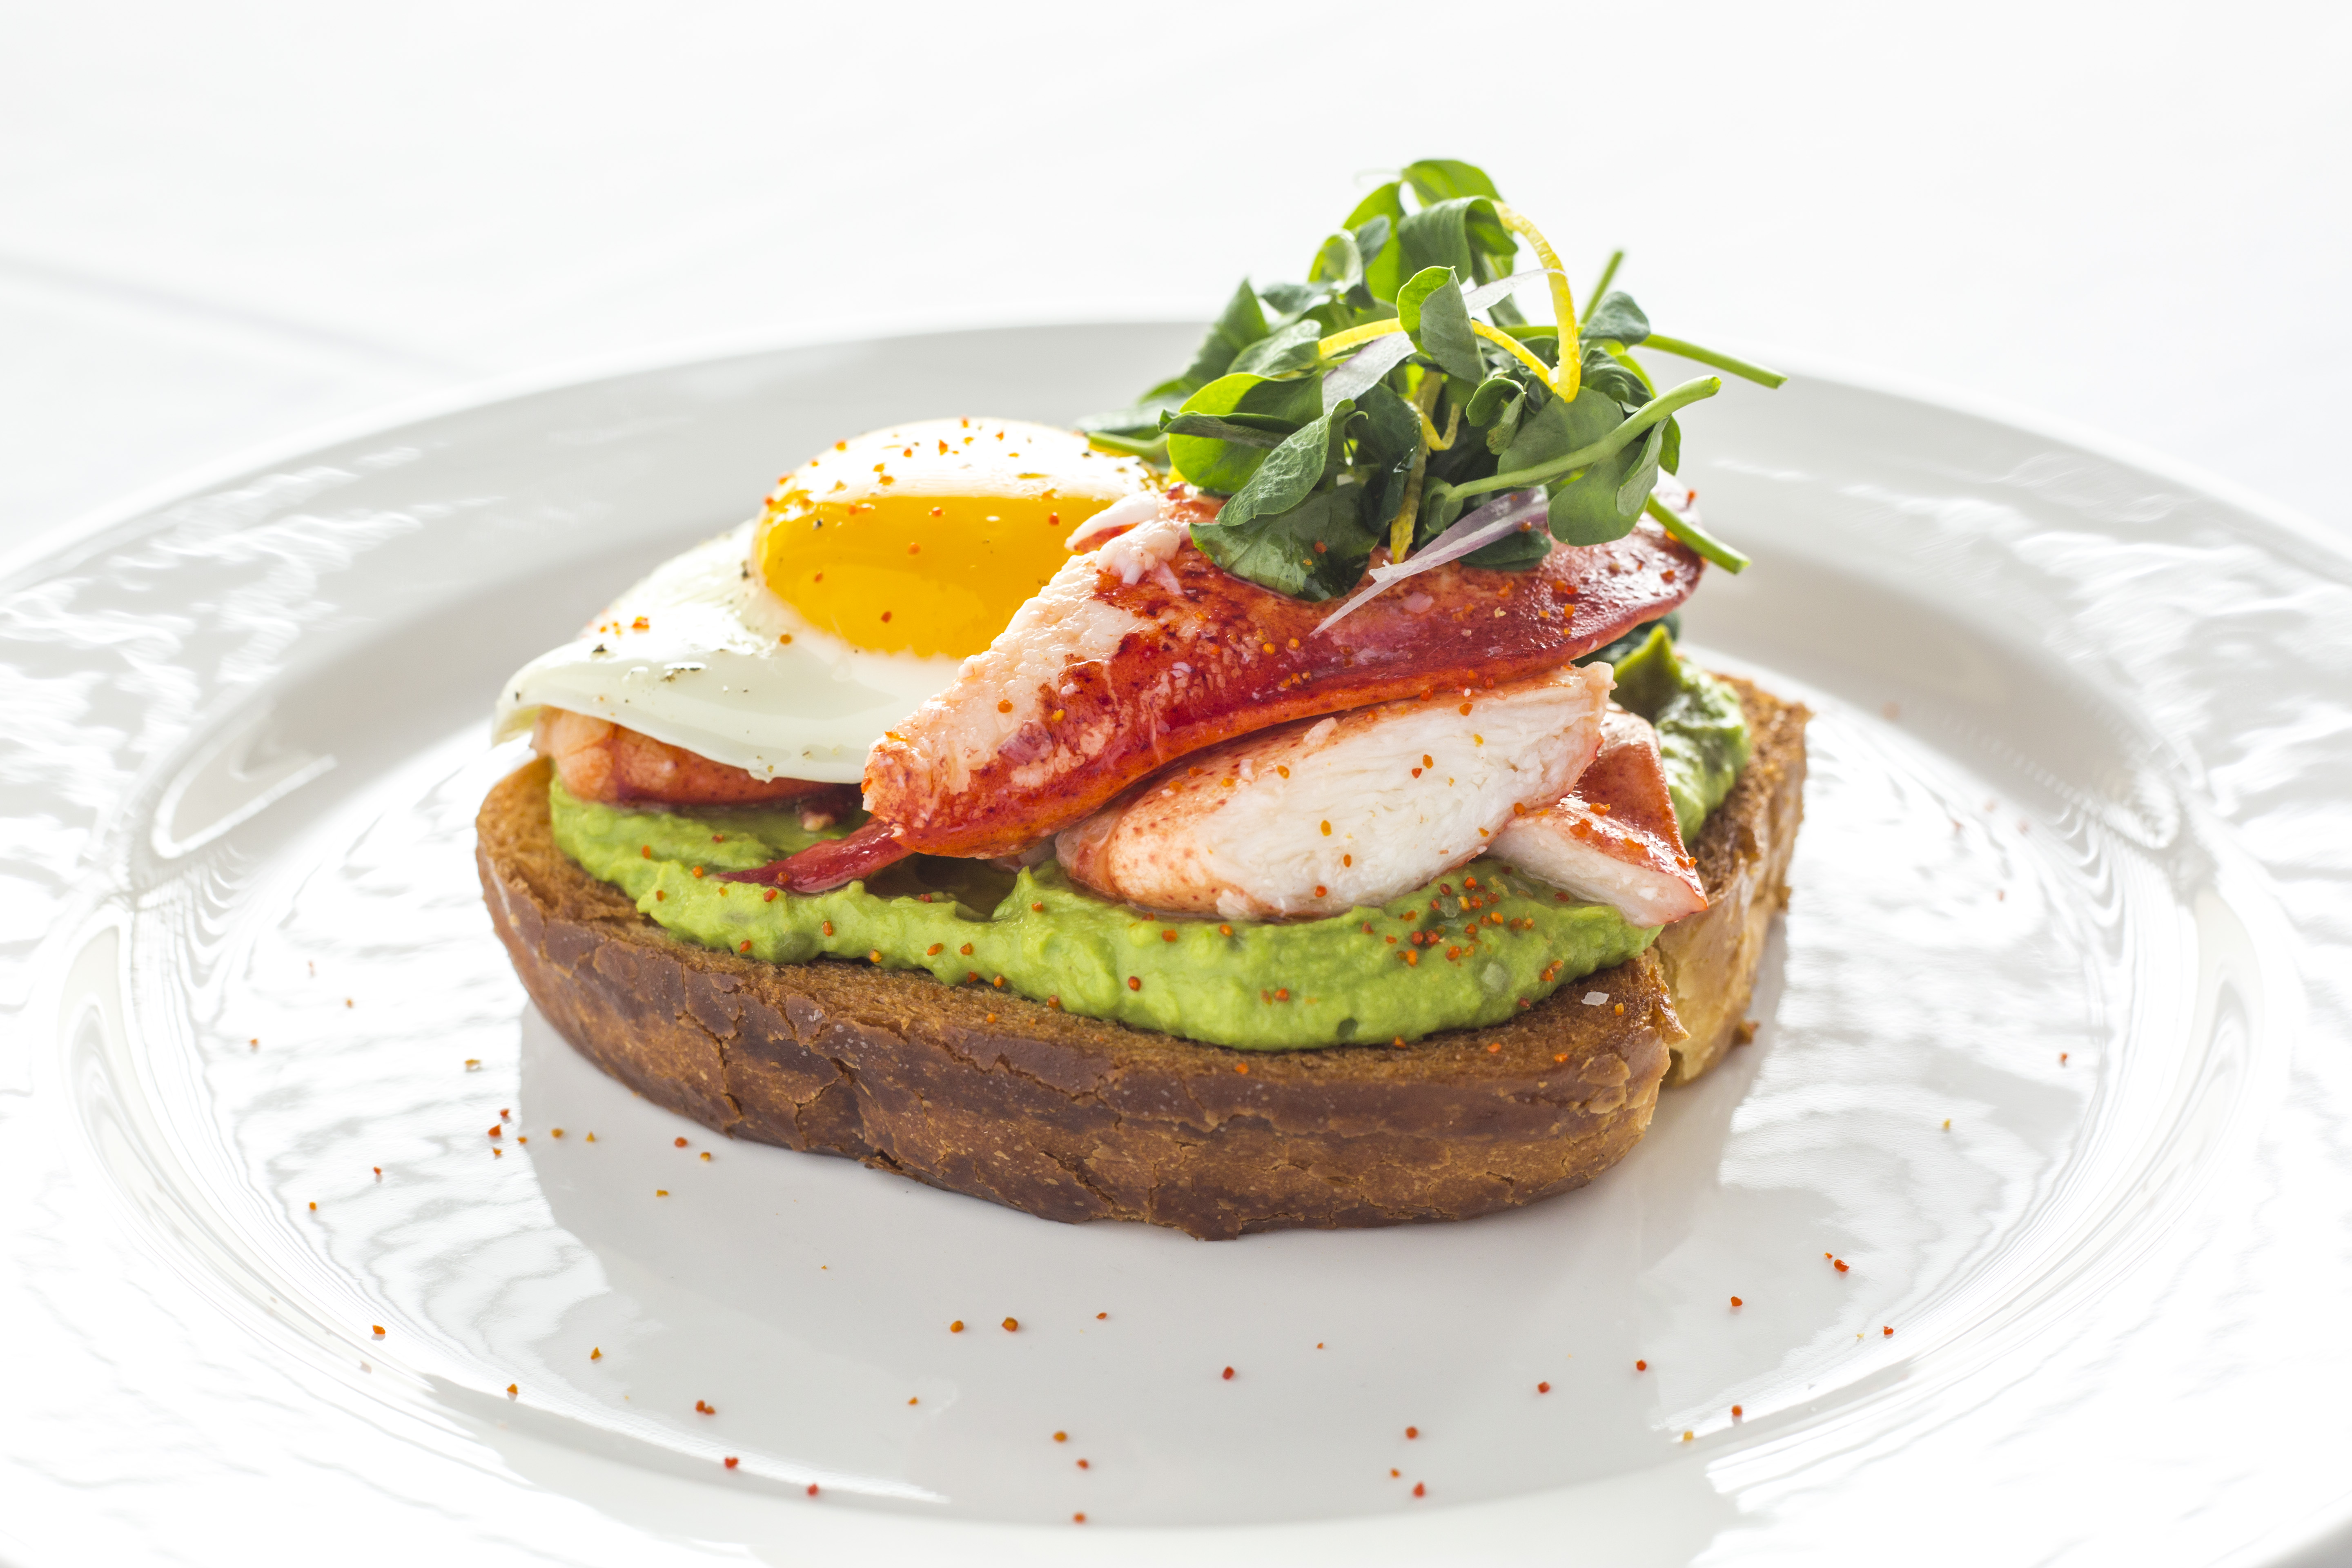 <p>Ocean Prime only offers brunch on a few holidays every year, but the dishes are delicious. The offerings include lobster toast, blood orange mimosas, crab and eggs and more. (Photo courtesy of Ocean Prime)</p>